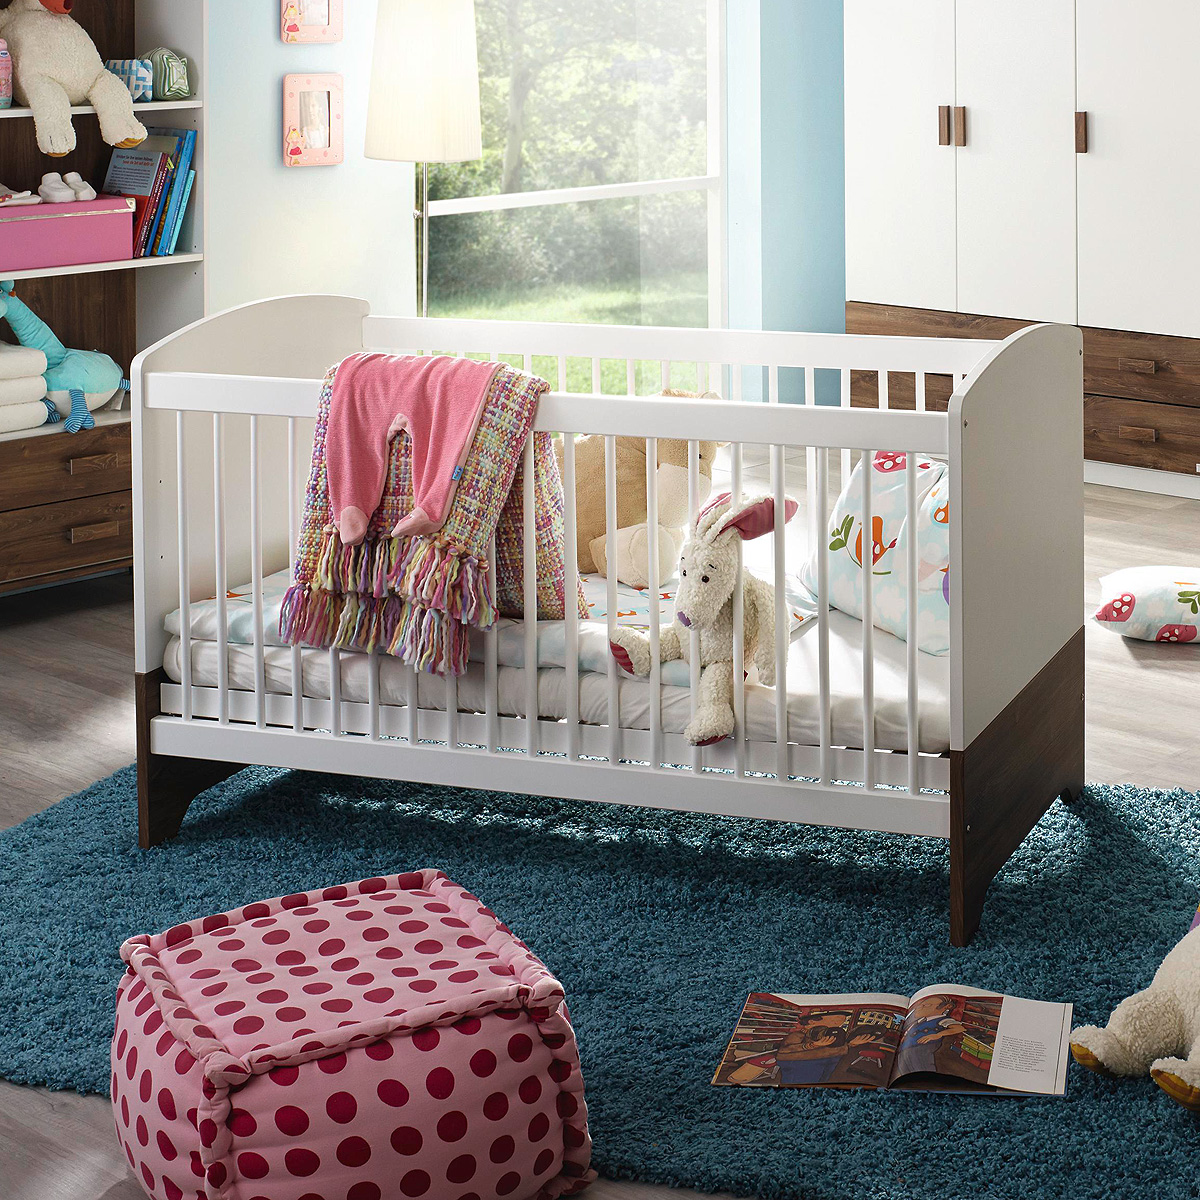 babybett susann sprossenbett kinderbett wei eiche stirling mit lattenrost ebay. Black Bedroom Furniture Sets. Home Design Ideas